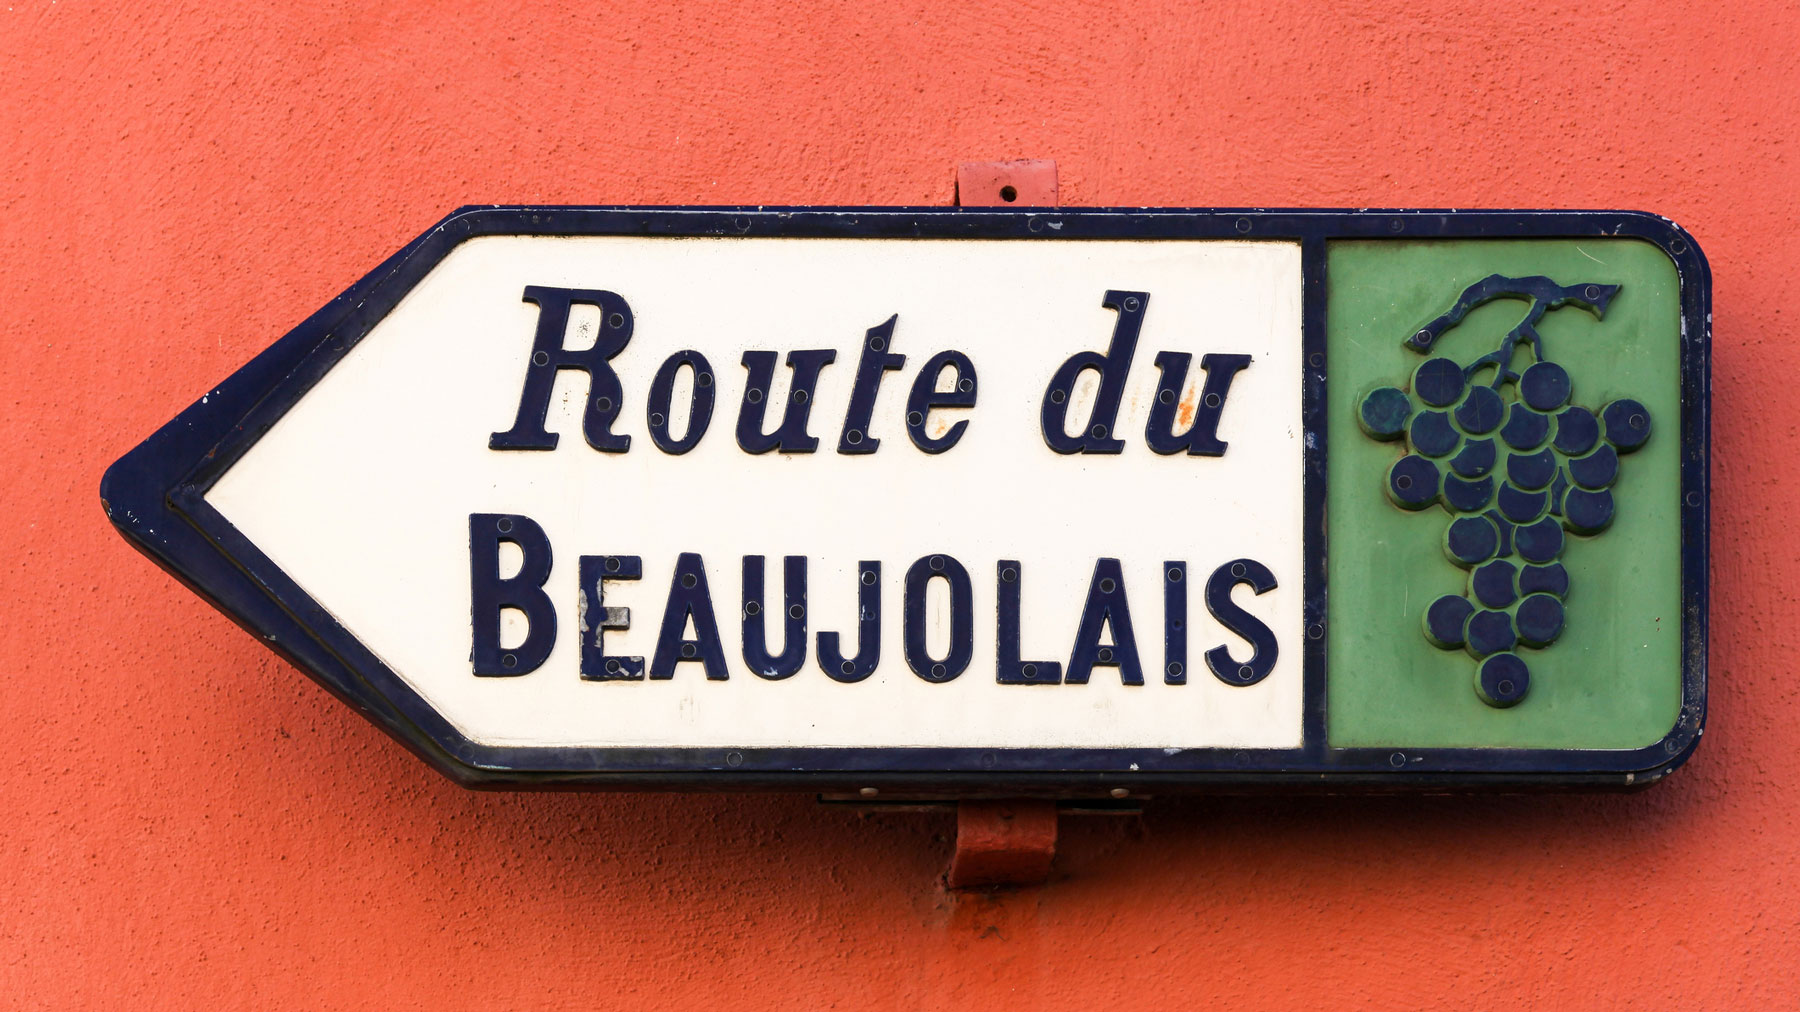 beaujolais-FT-BLOG0517.jpg